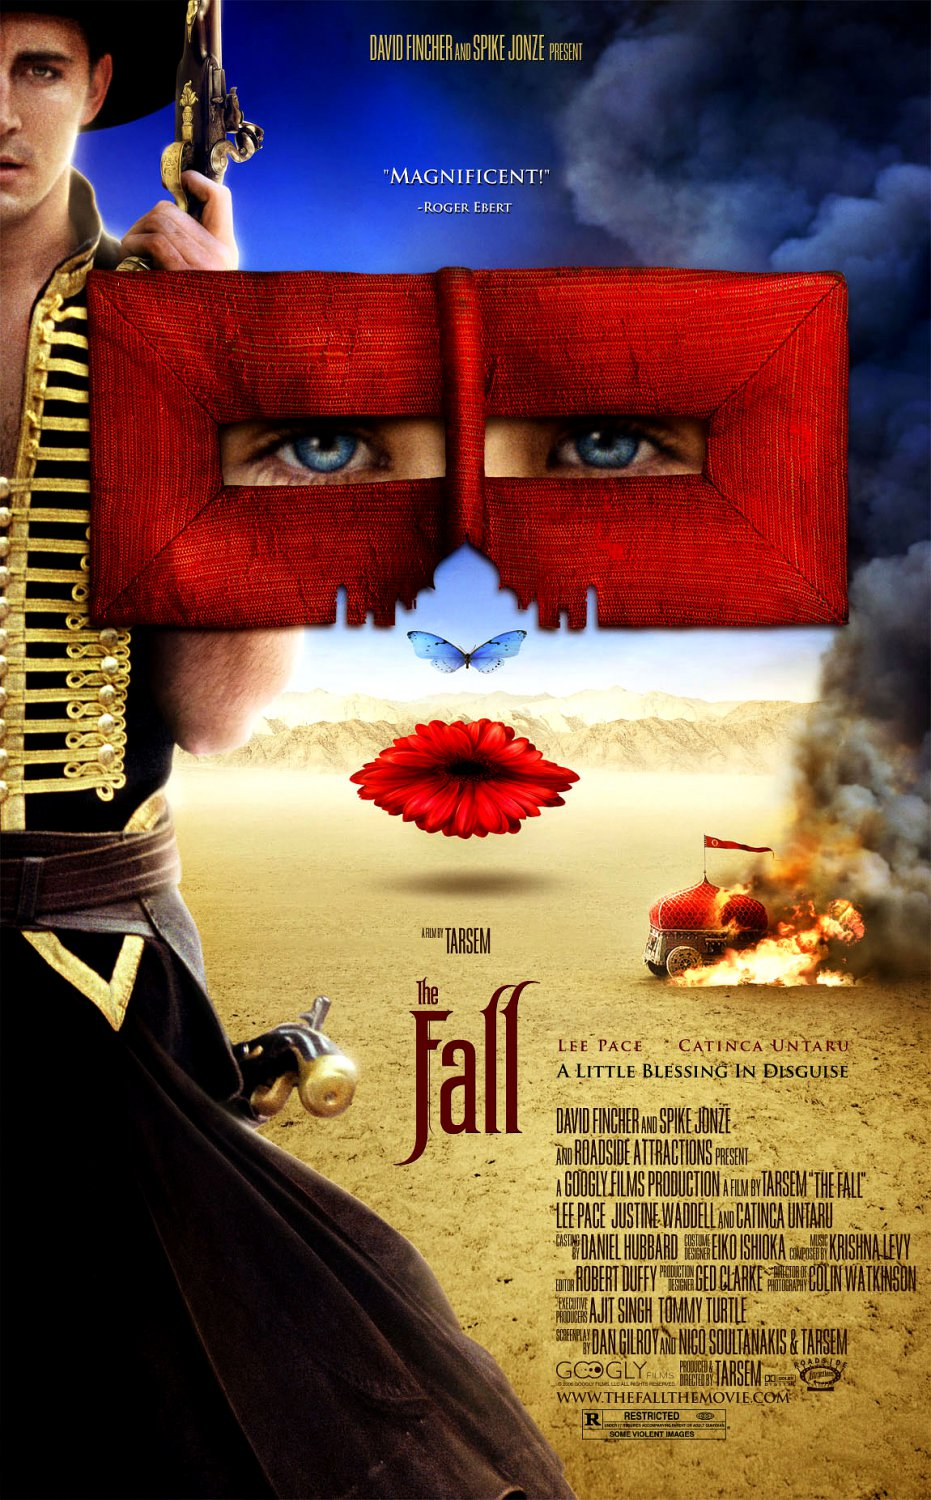 Tarsem's THE FALL Movie Poster * CATINCA UNTARU & LEE PACE * 4' x 6' Rare 2008 Mint